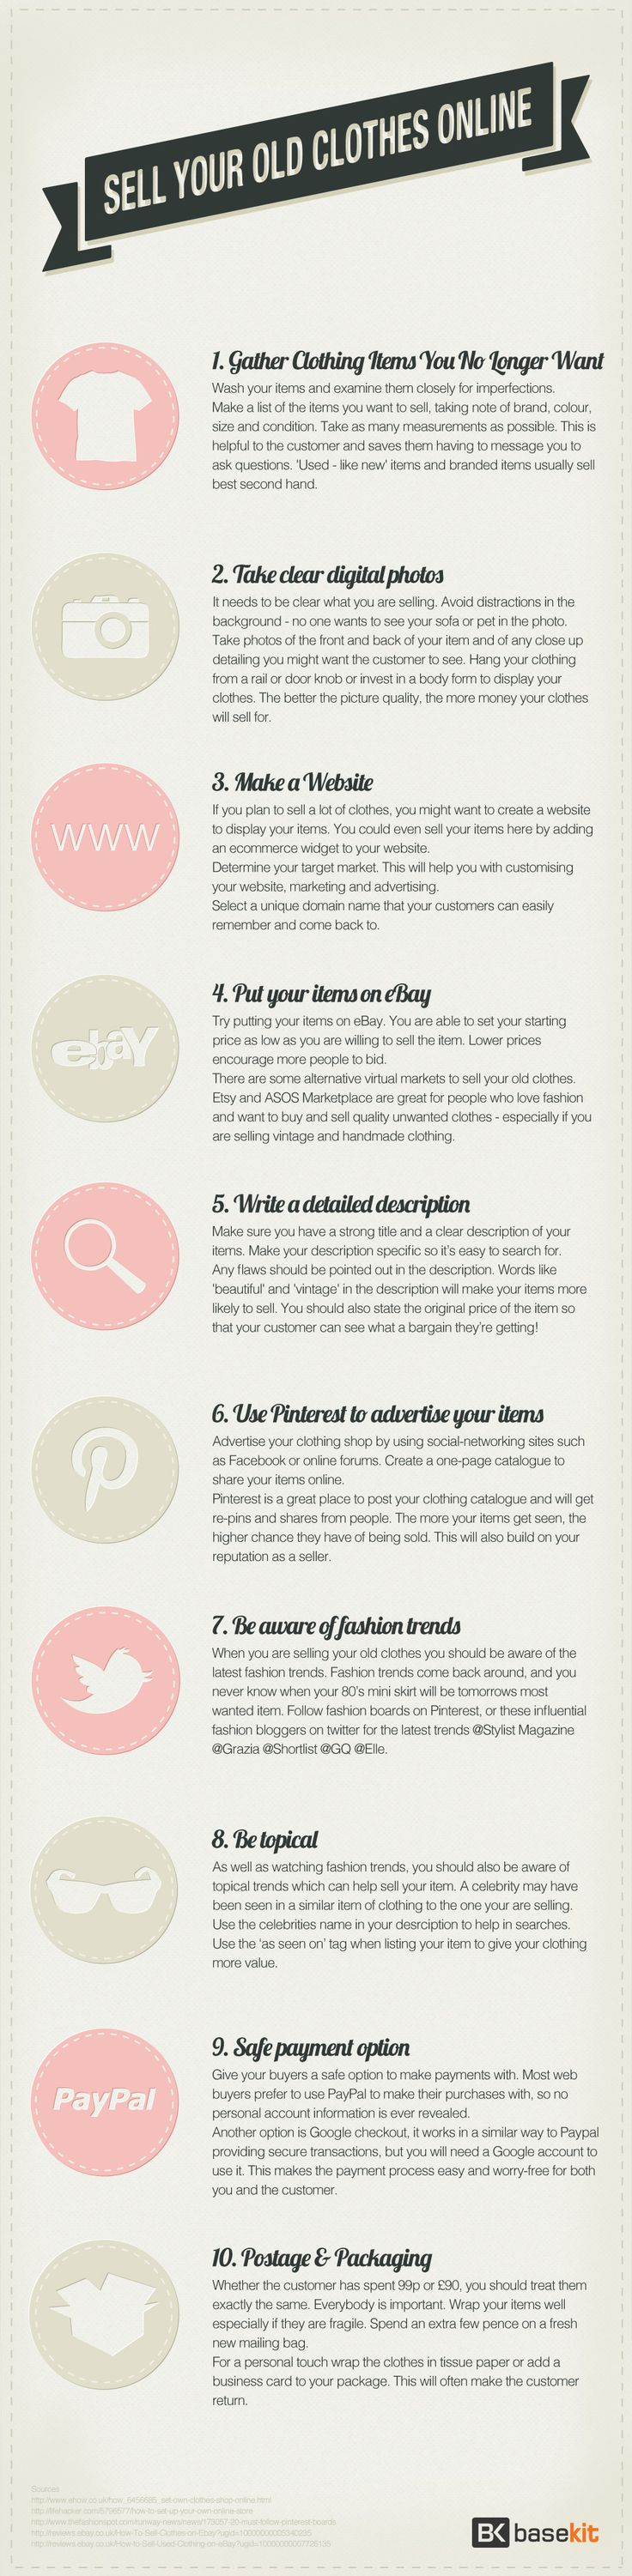 best infografías images on pinterest career households and